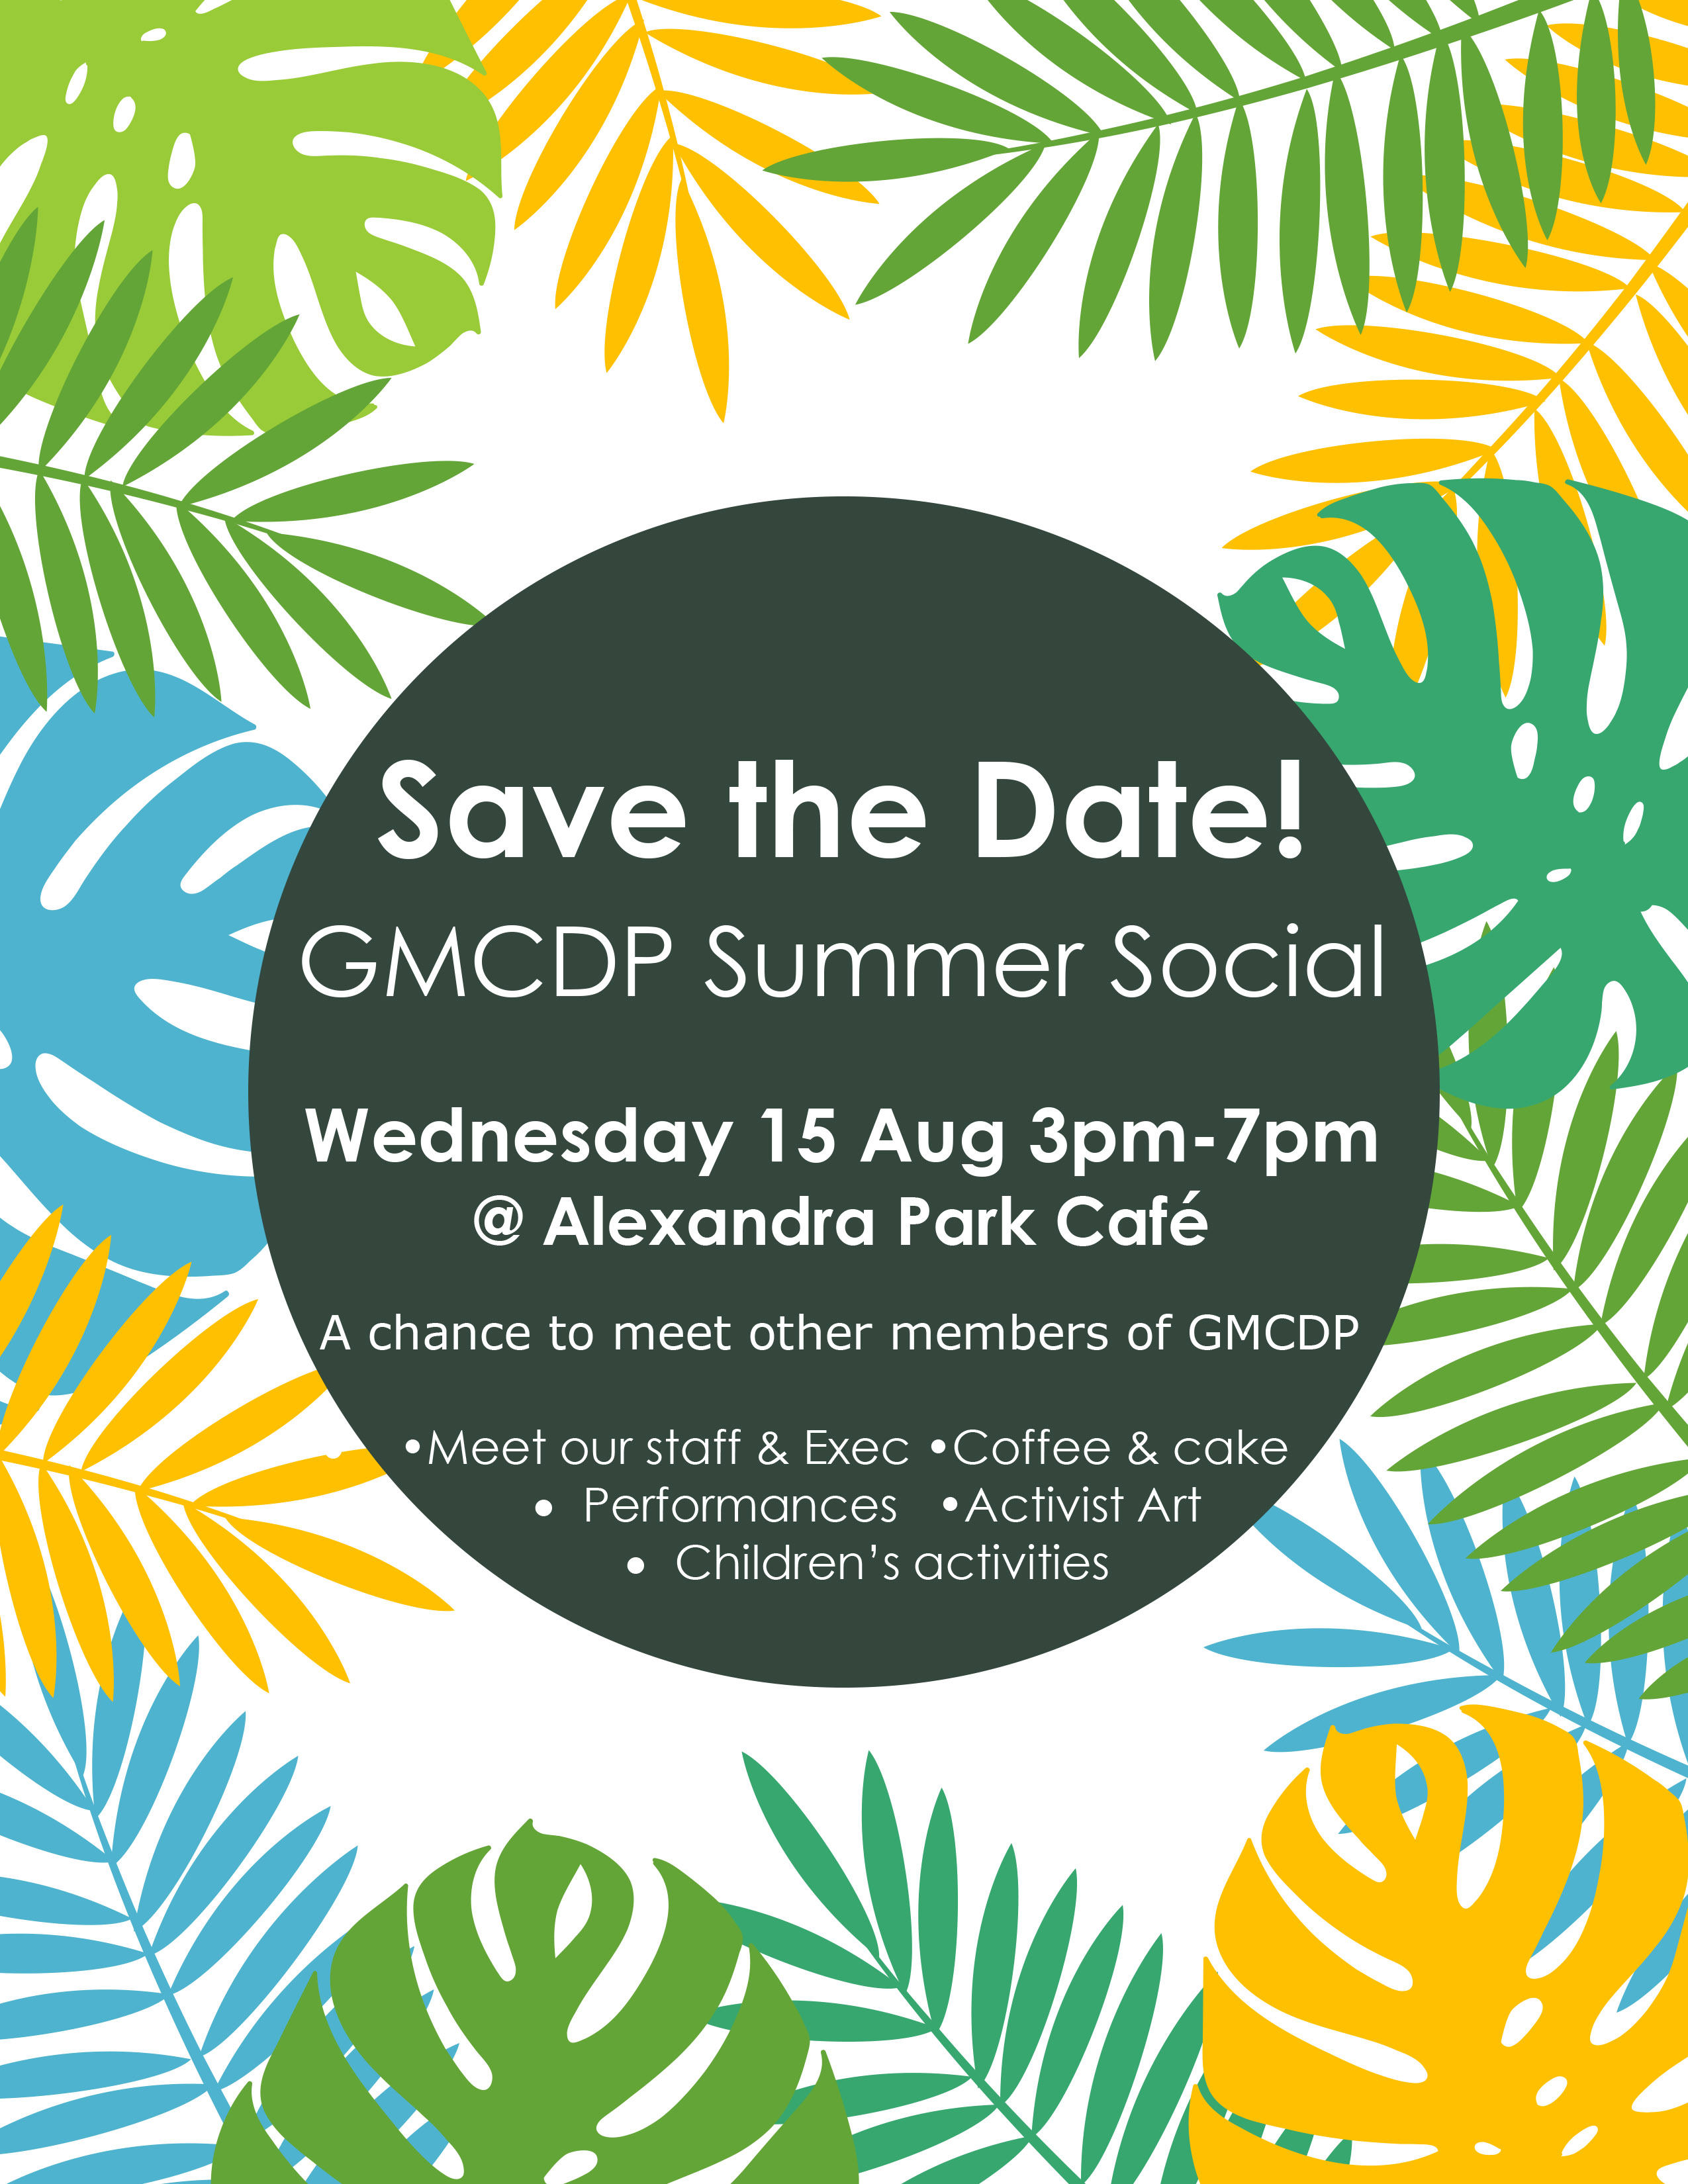 GMCDP is hosting a Summer Social on 15 August. This is a chance to meet other members of GMCDP, and there will also be performances, Activist Art, and children's activities. We hope to see you there! More information to follow…